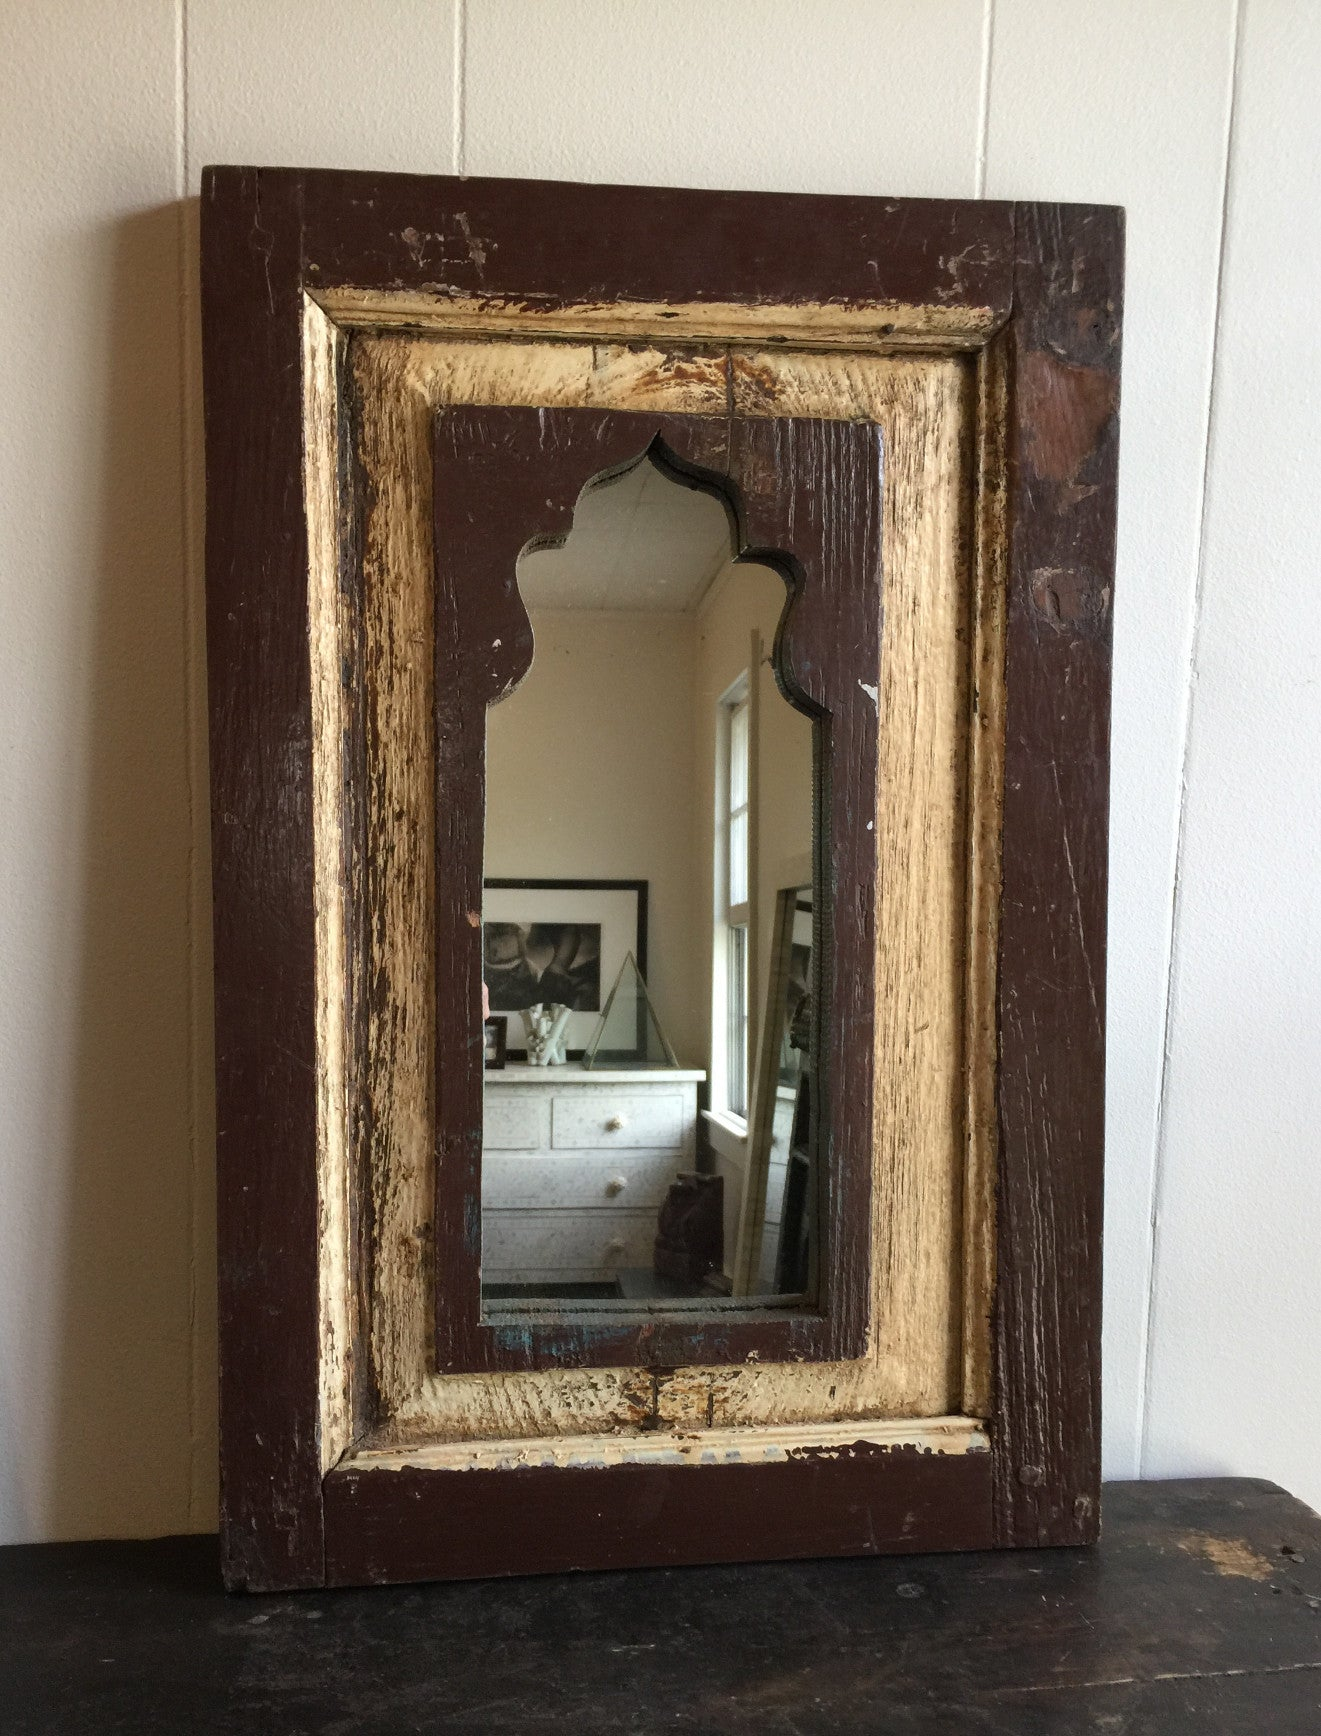 ... Antique Indian Mirror - Hand Carved Wood - Reclaimed wood - Shop Nectar  ... - Assorted Rustic Arched Wooden Wall Mirrors SHOP NECTAR